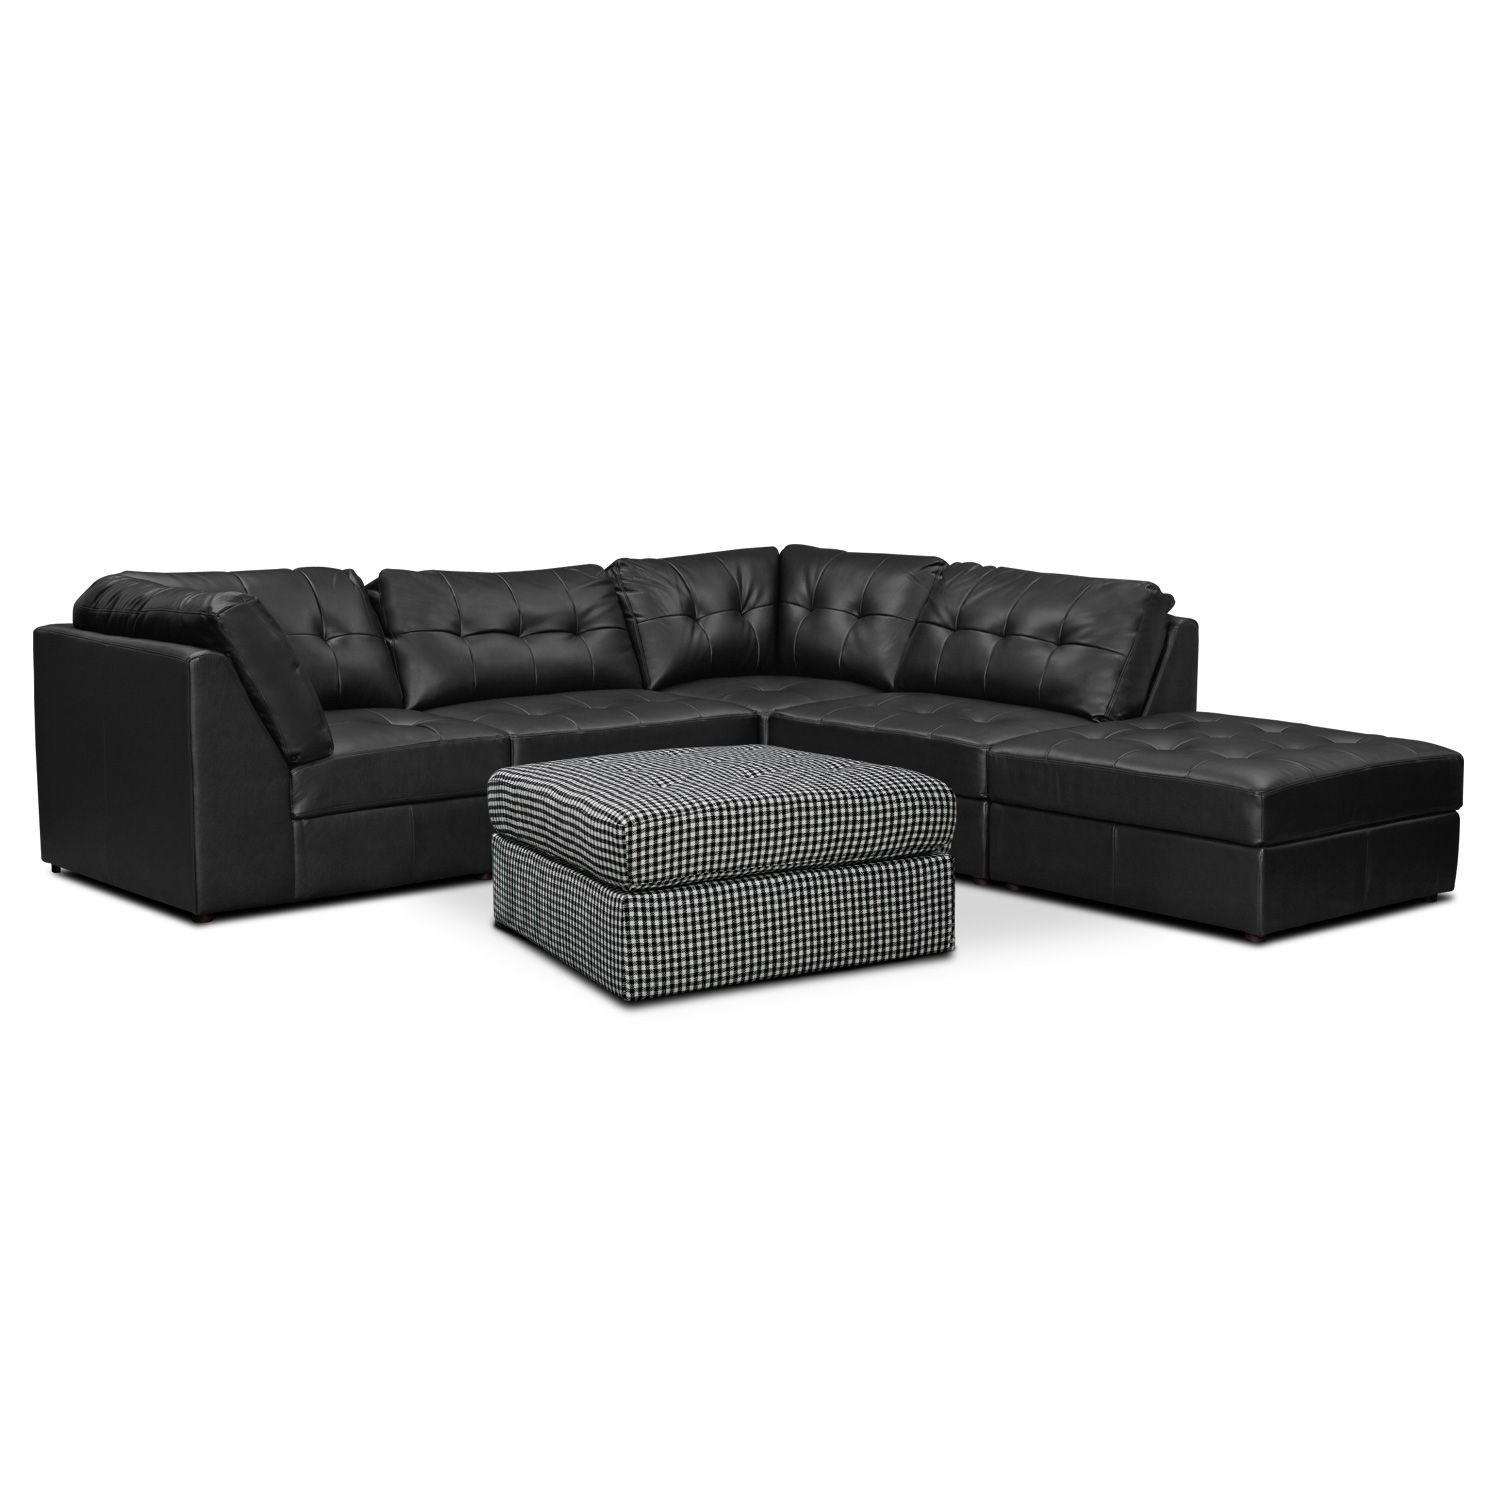 Aventura 6 Pc Sectional Value City Furniture Furniture American Signature Furniture